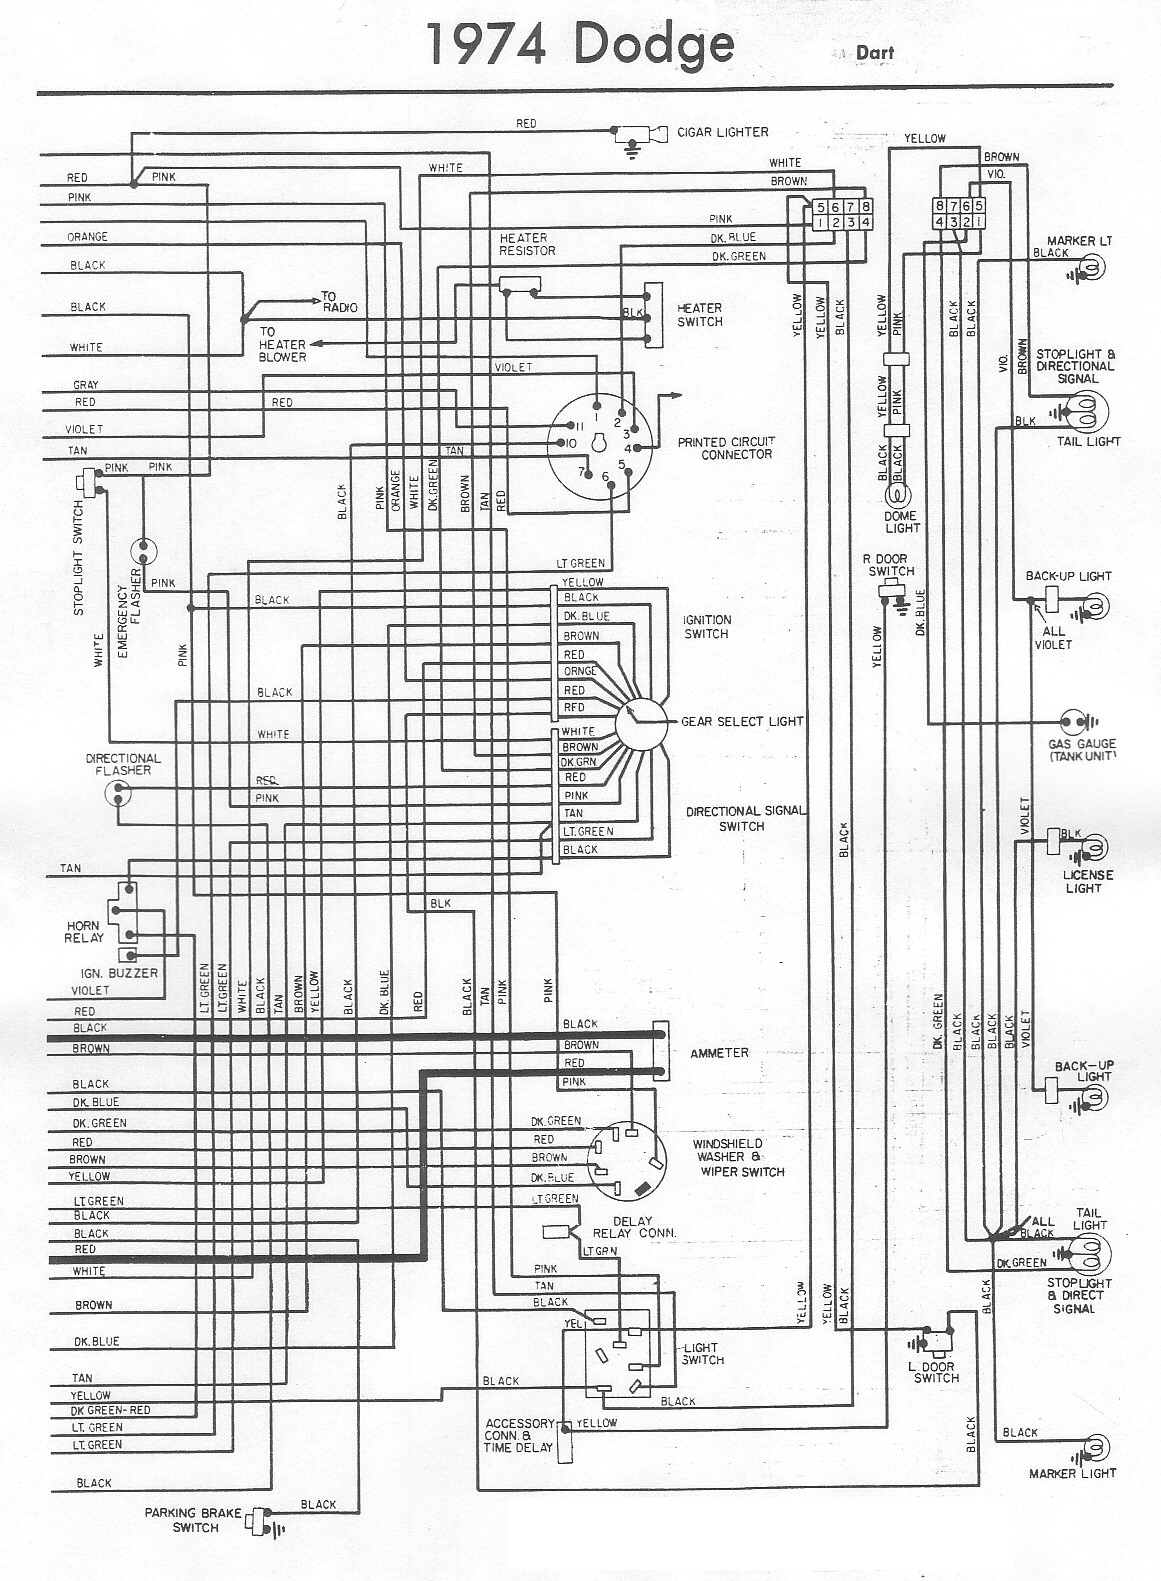 1975 dodge light wiring diagram  u2022 wiring diagram for free